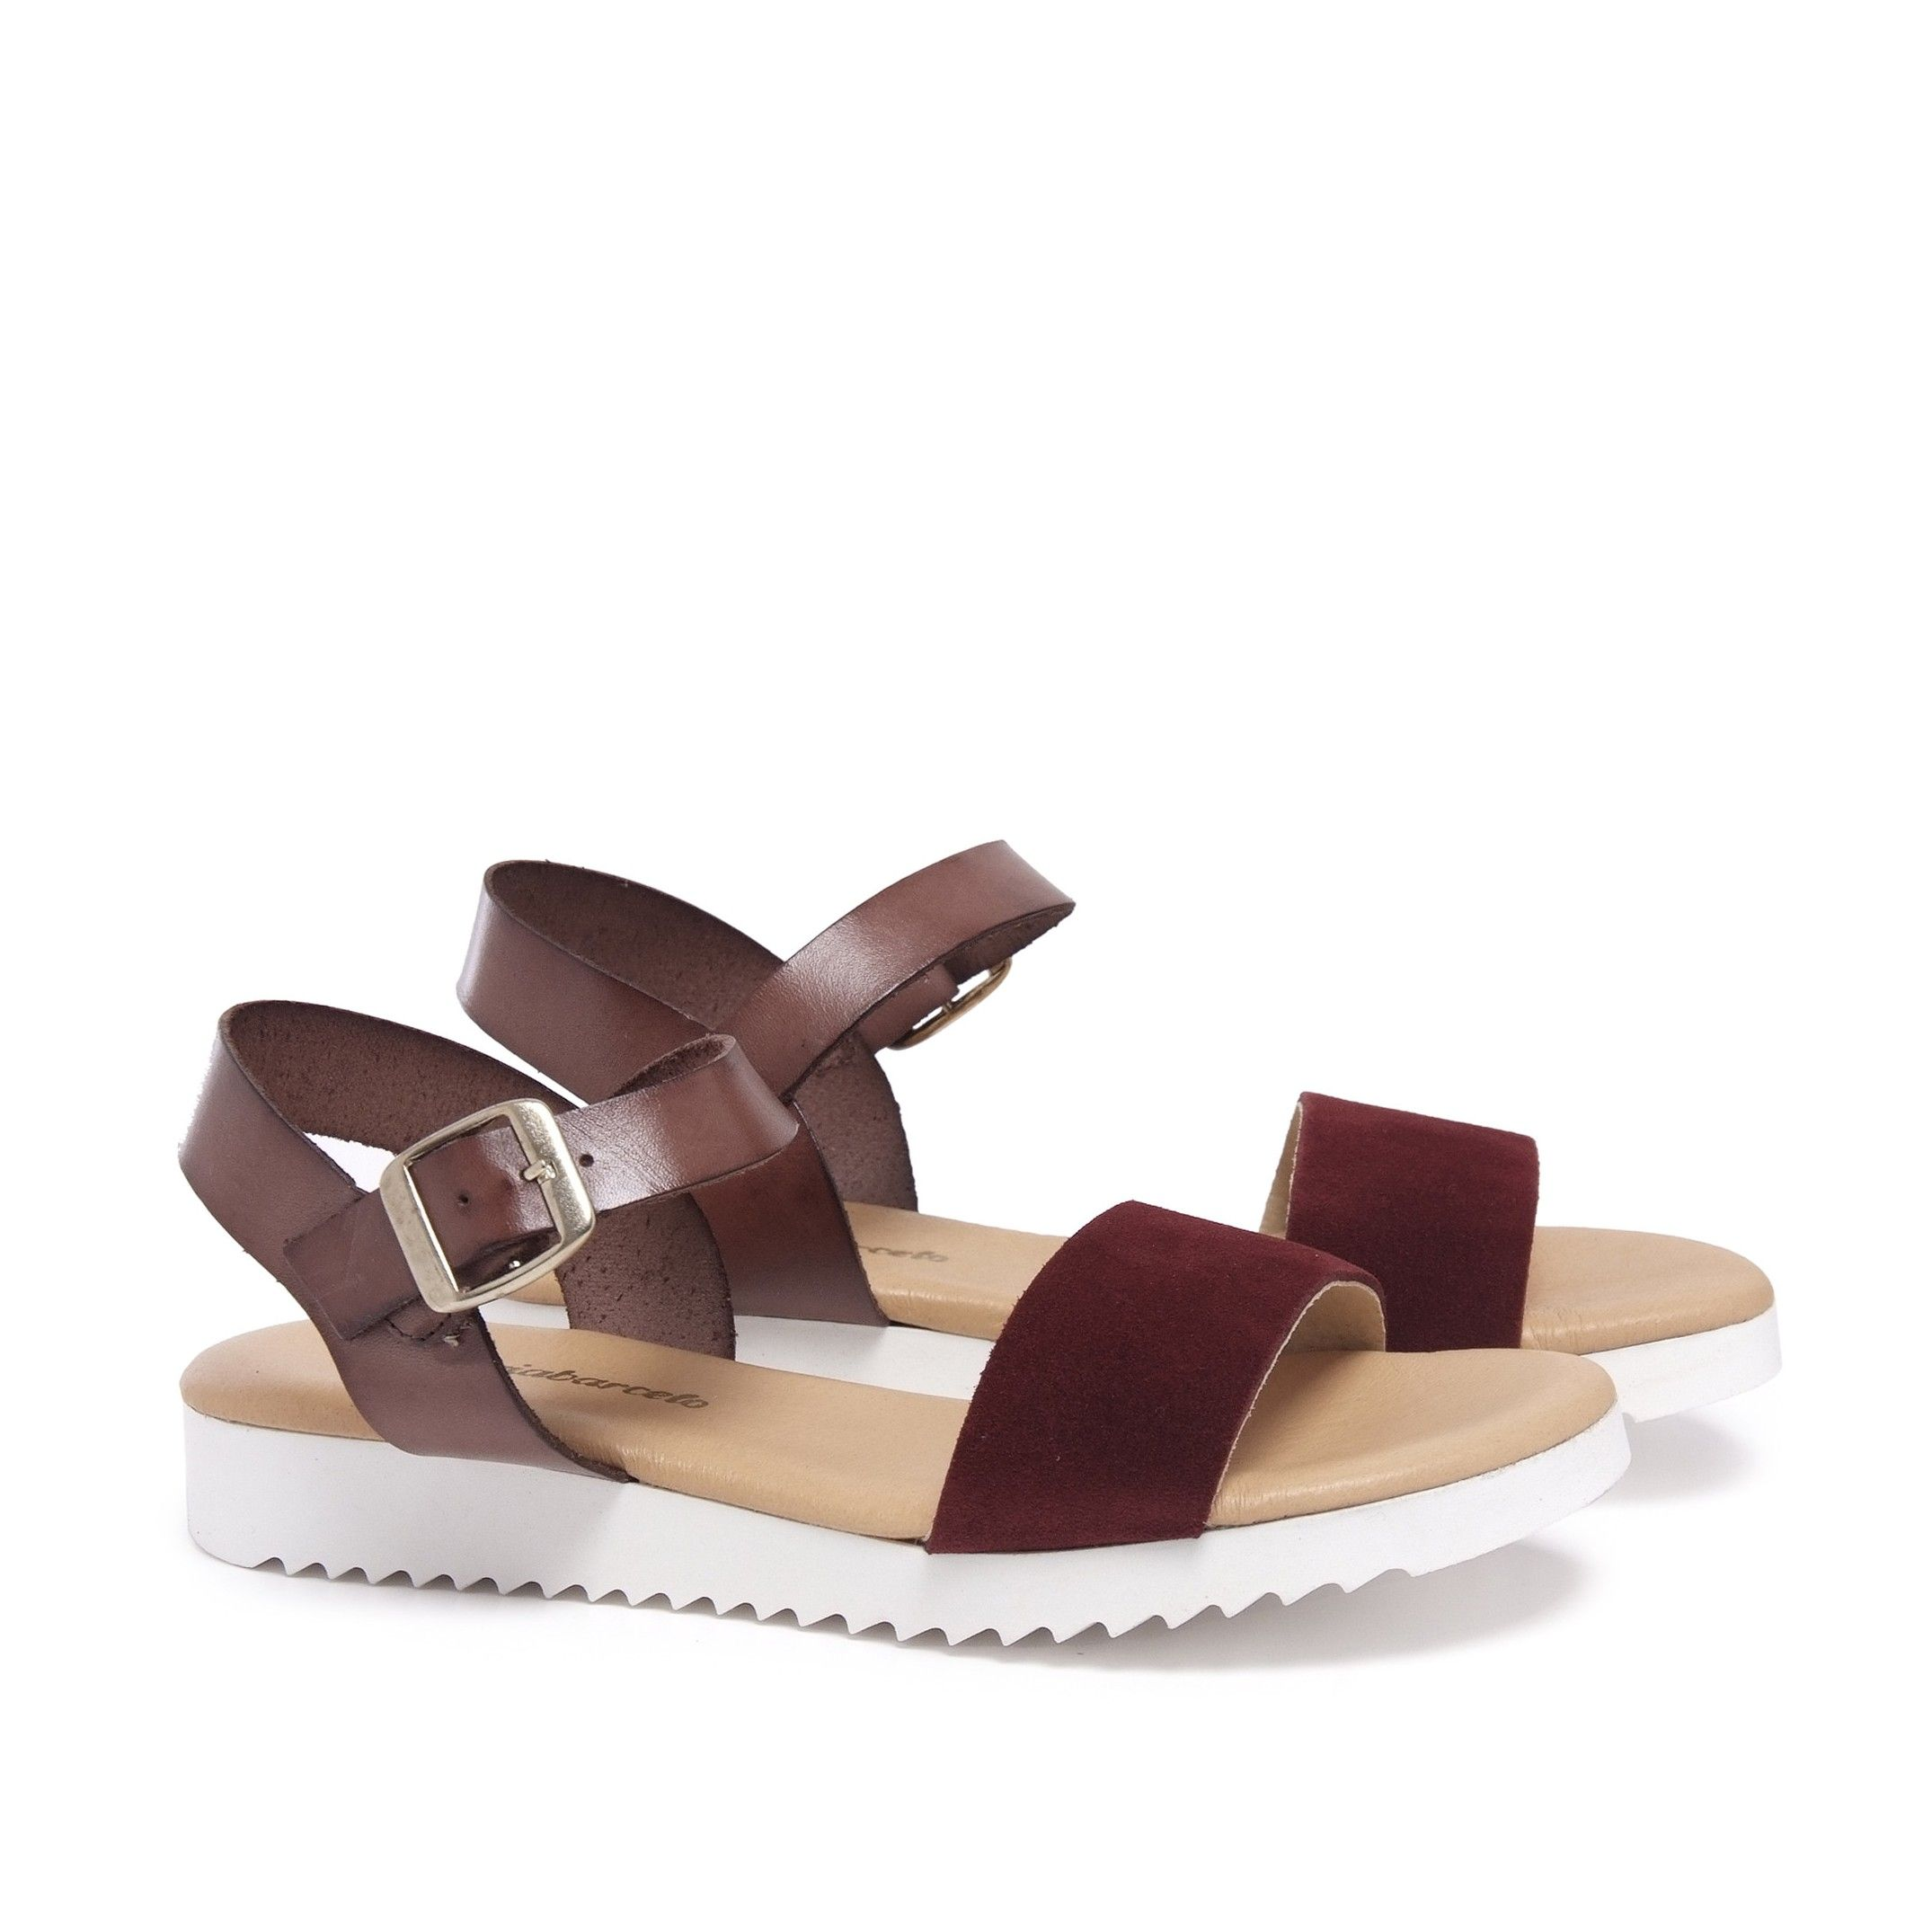 Leather Bordeaux Sandals Flip Flop Women Maria Barcelo